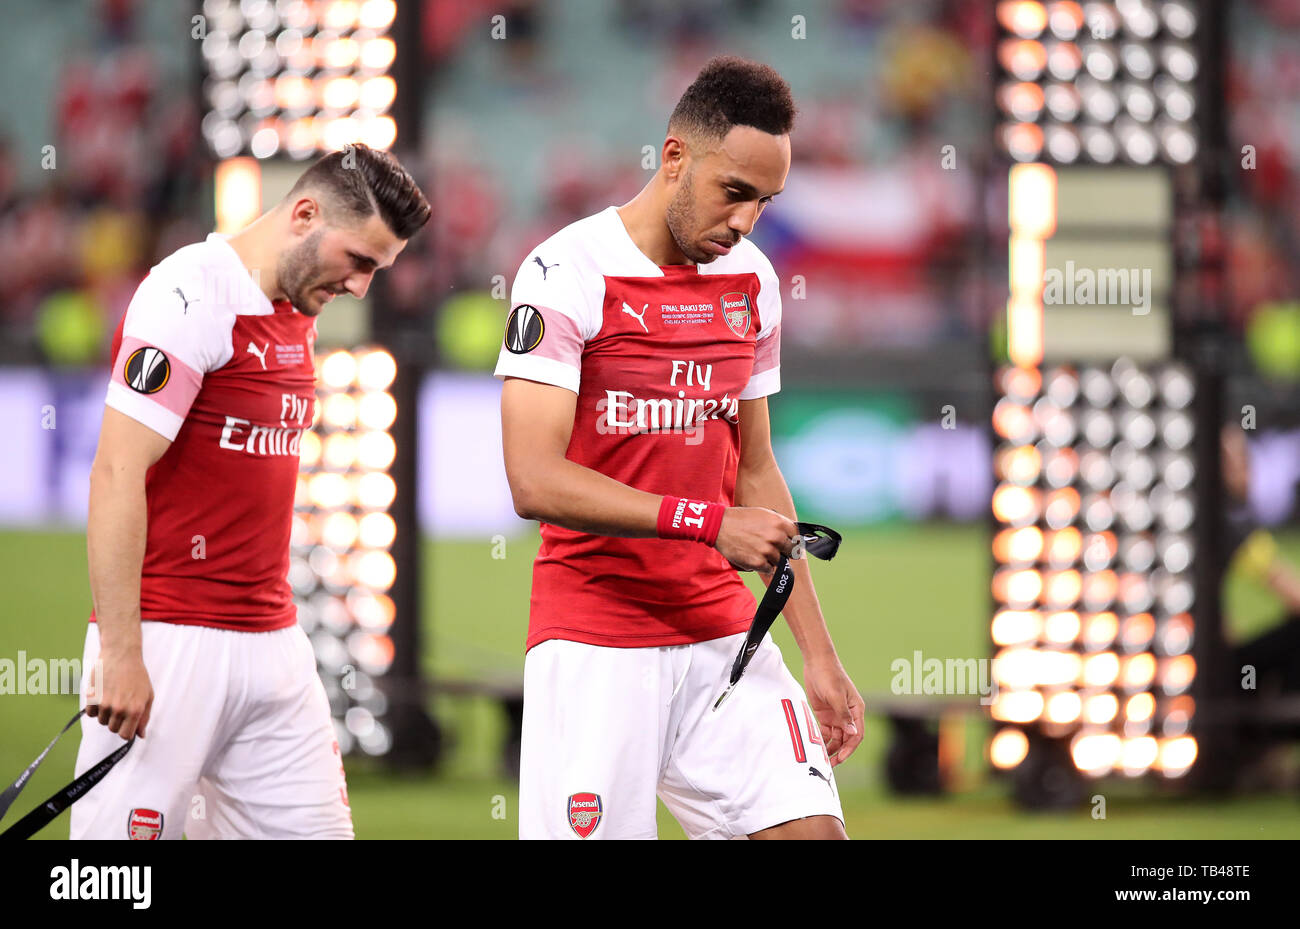 Arsenal's Sead Kolasinac (left) and Pierre-Emerick Aubameyang take off their runners-up medals after the UEFA Europa League final at The Olympic Stadium, Baku, Azerbaijan. - Stock Image